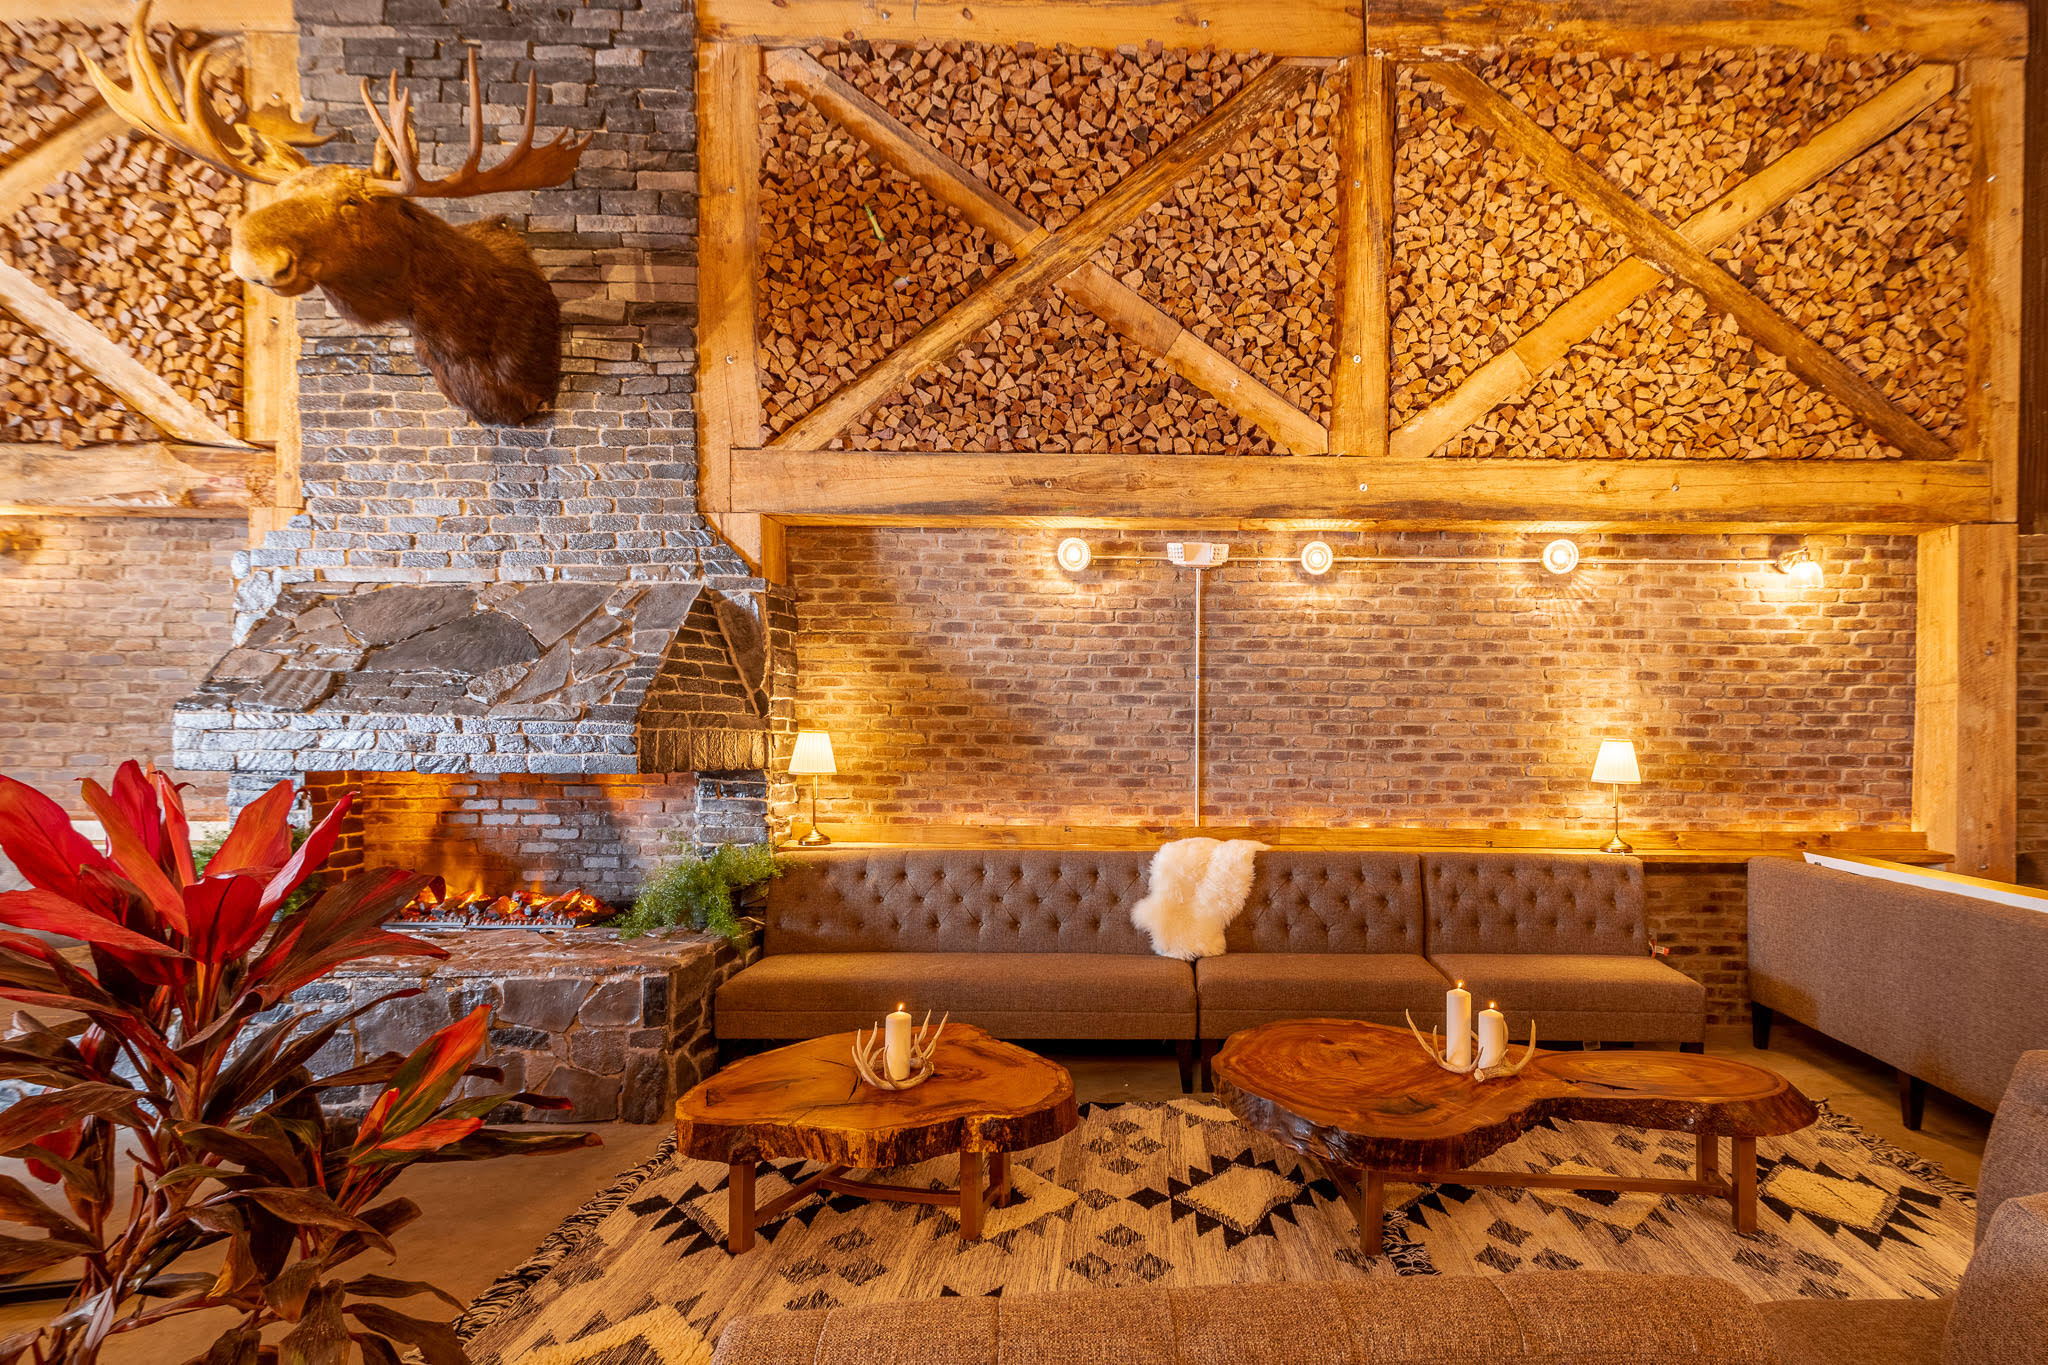 inside restaurant with brick wall, leather chair, moose antler